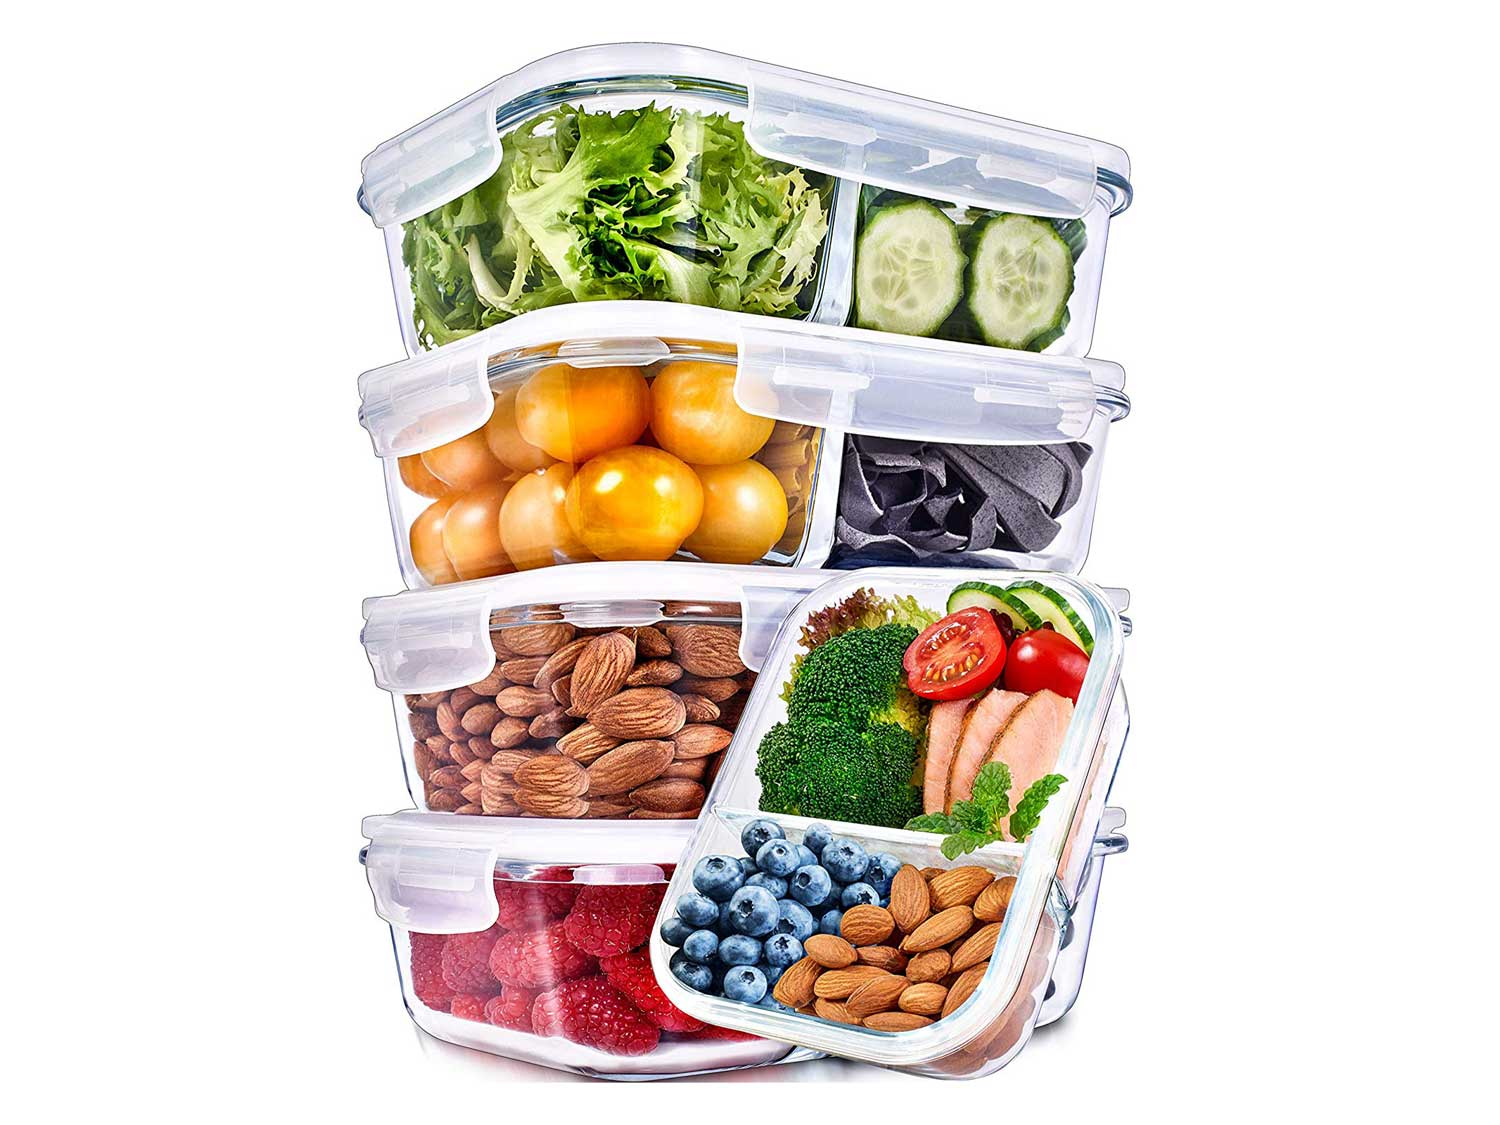 Glass Meal Prep Containers 2 Compartment Meal Prep Containers Glass